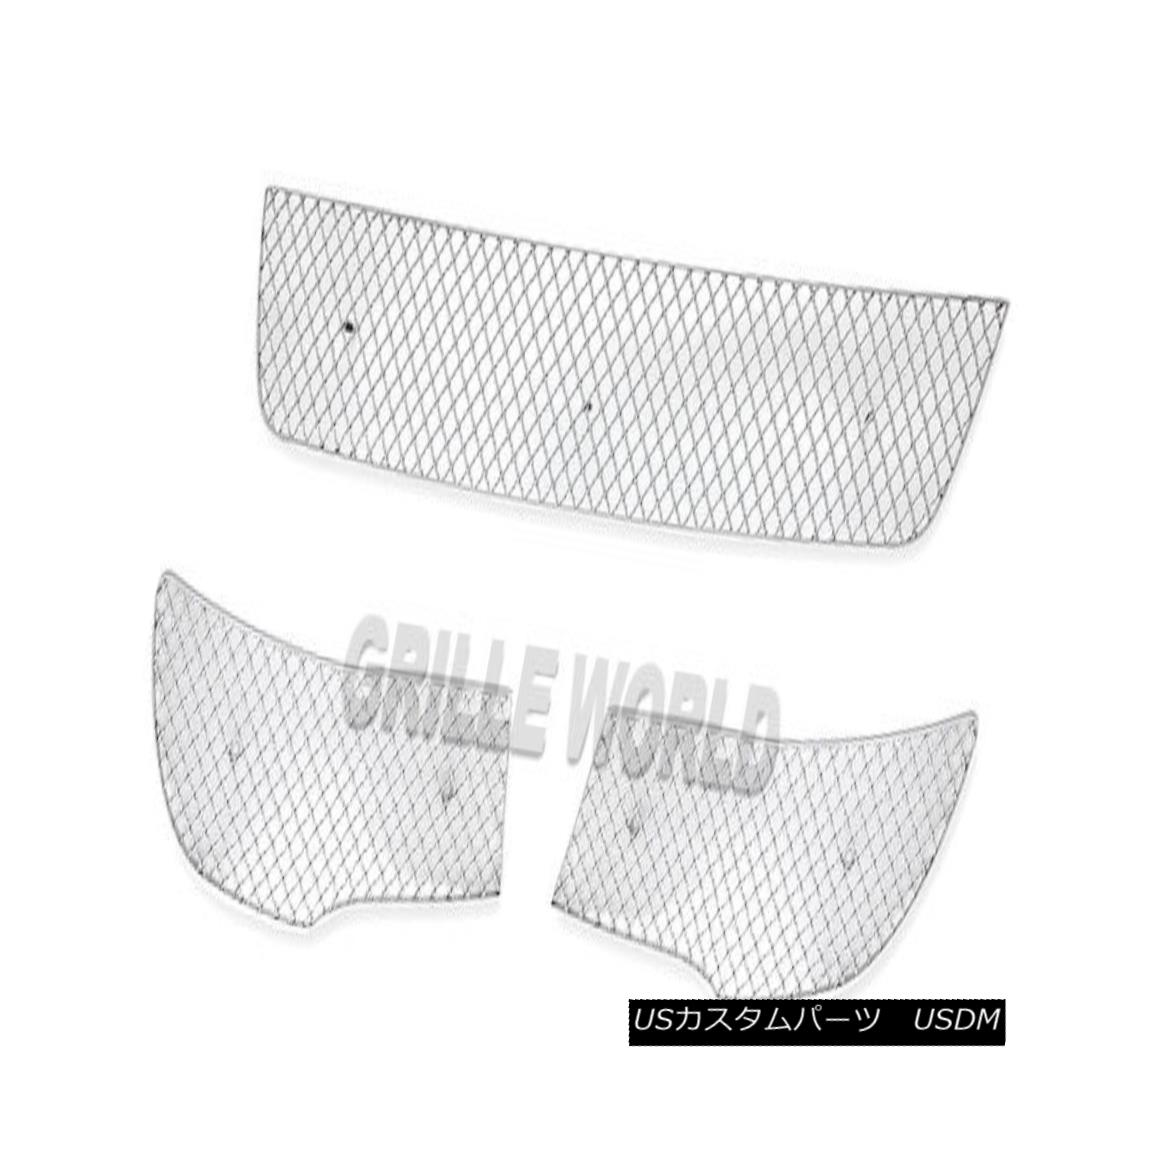 グリル For 10-11 Kia Forte Sedan Bumper Stainless Steel Wire X Mesh Blitz Grille Grill 10-11キアフォルテセダンバンパーステンレス鋼線Xメッシュブリッツグリルグリル